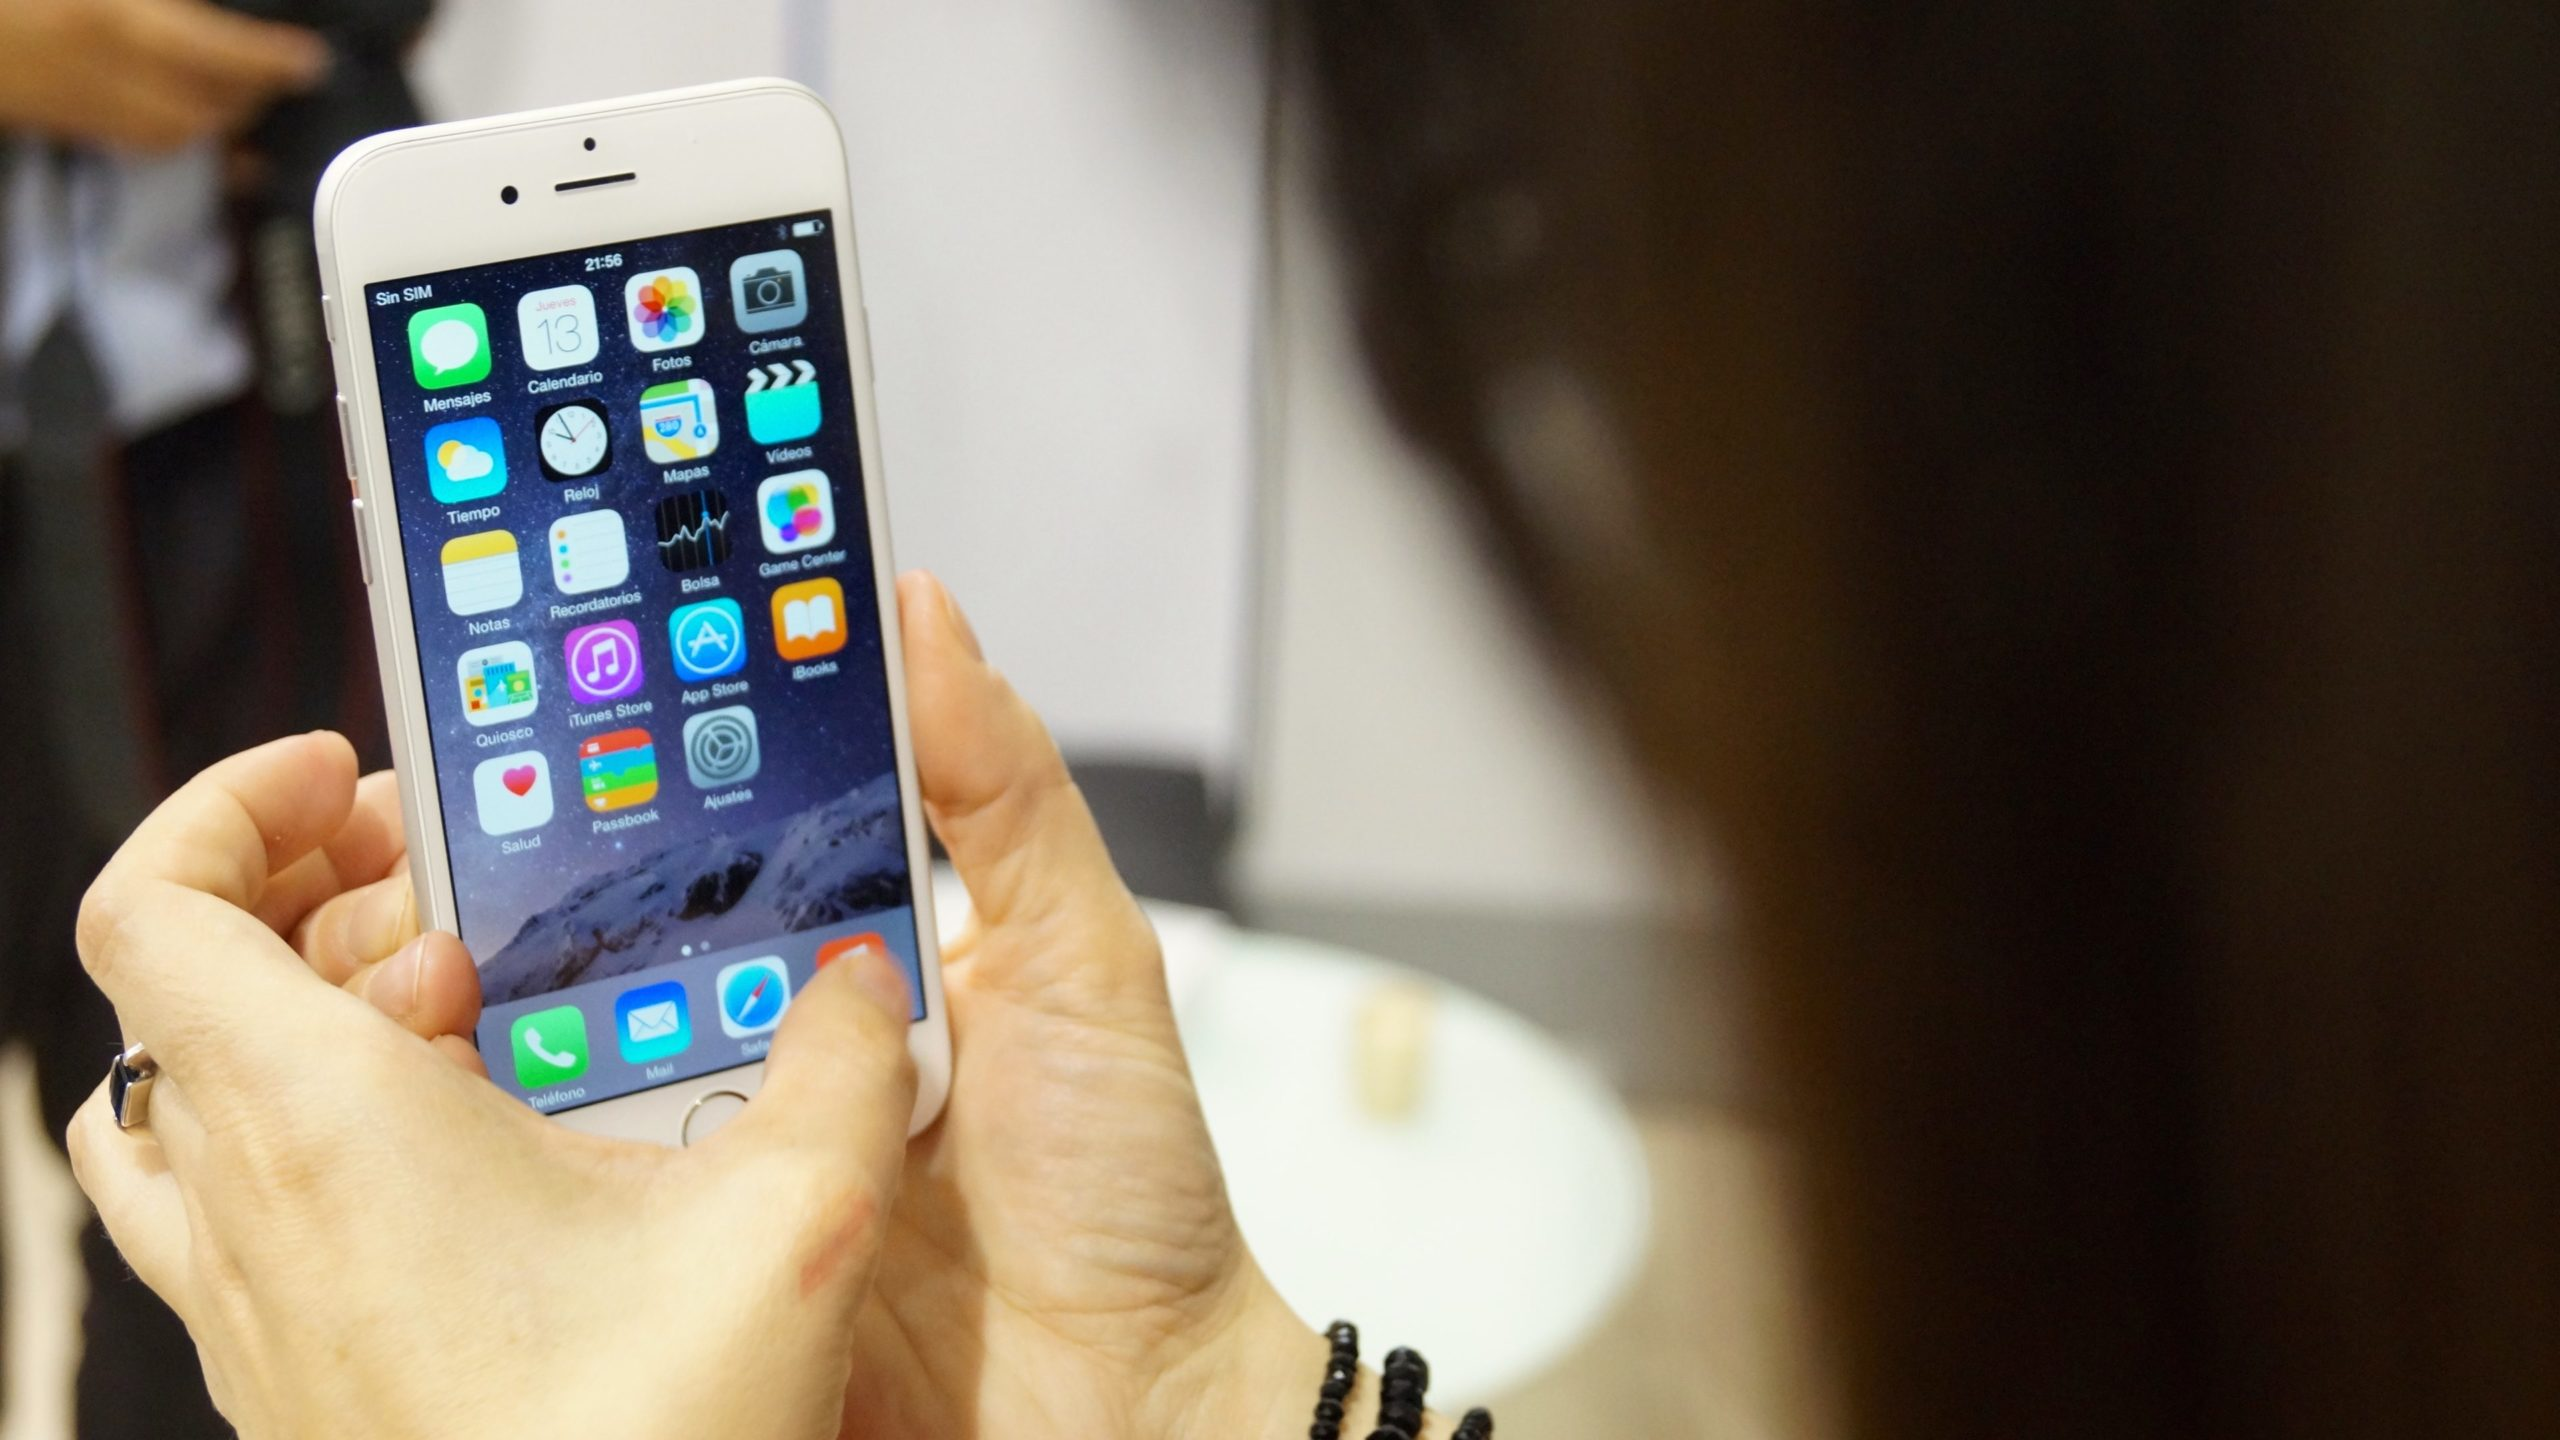 Apple iPhone 6 in Hand